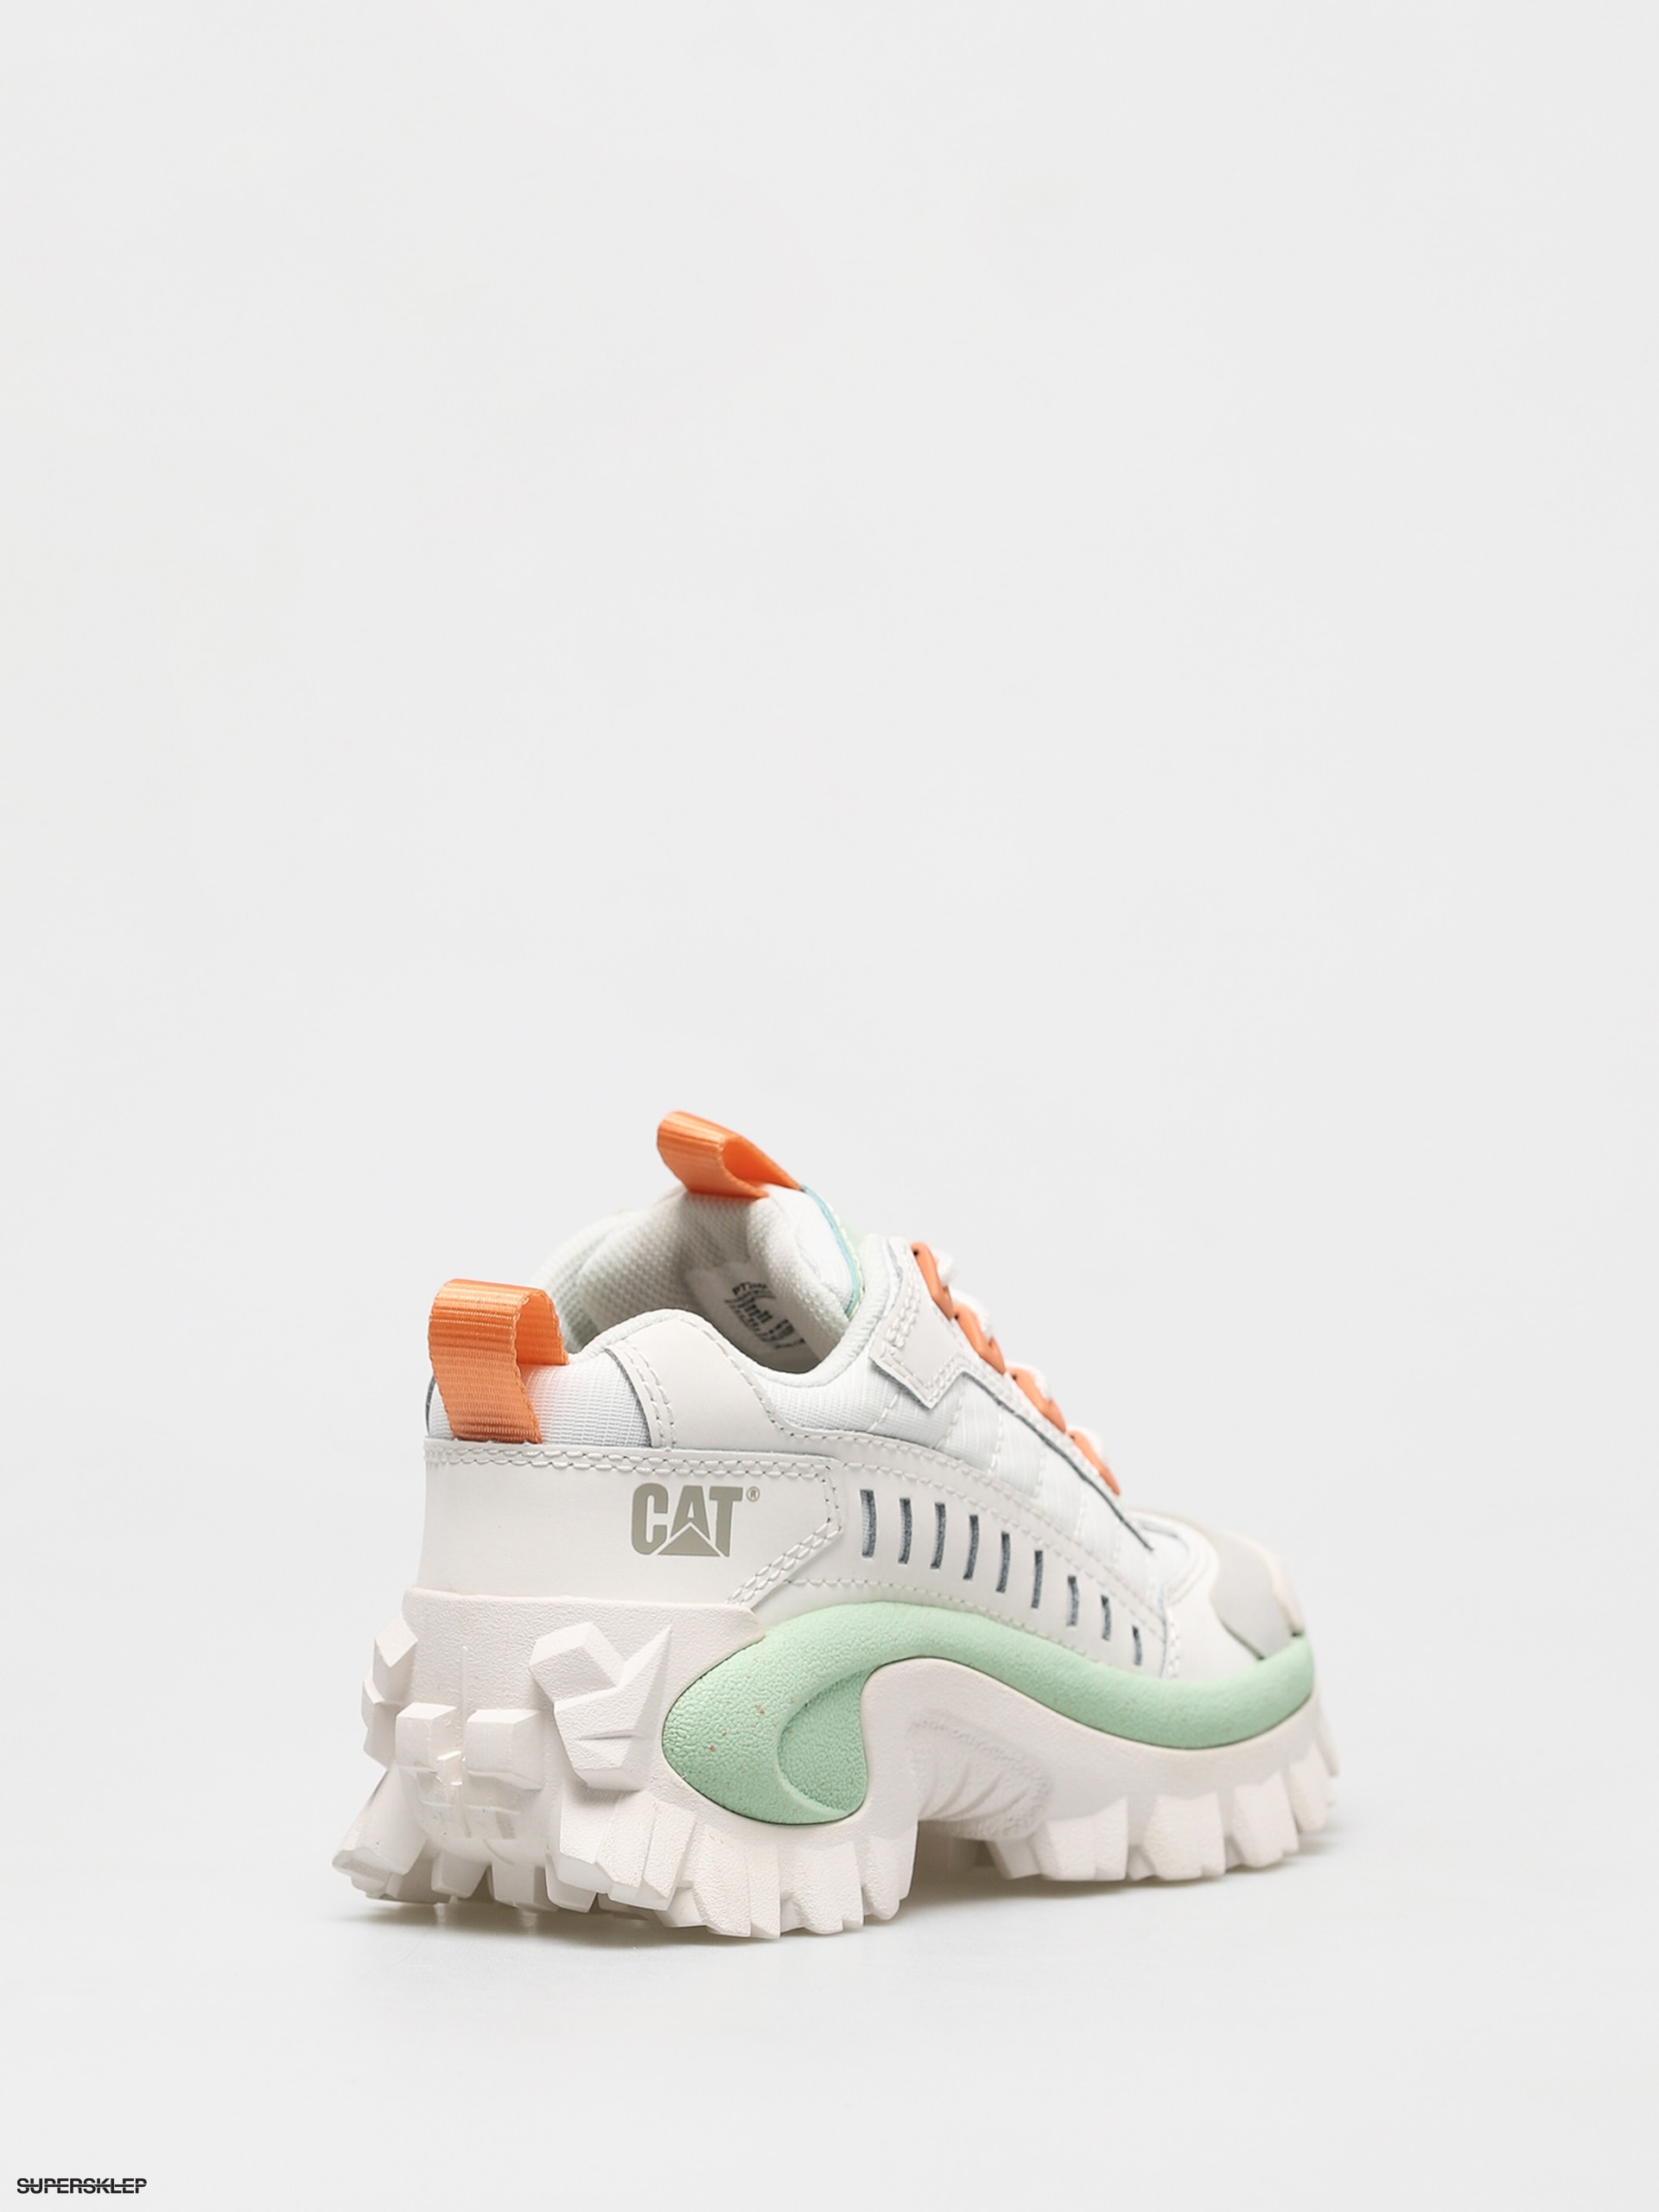 Sneakers CATERPILLAR Intruder P724500 Star WhitePastel Green